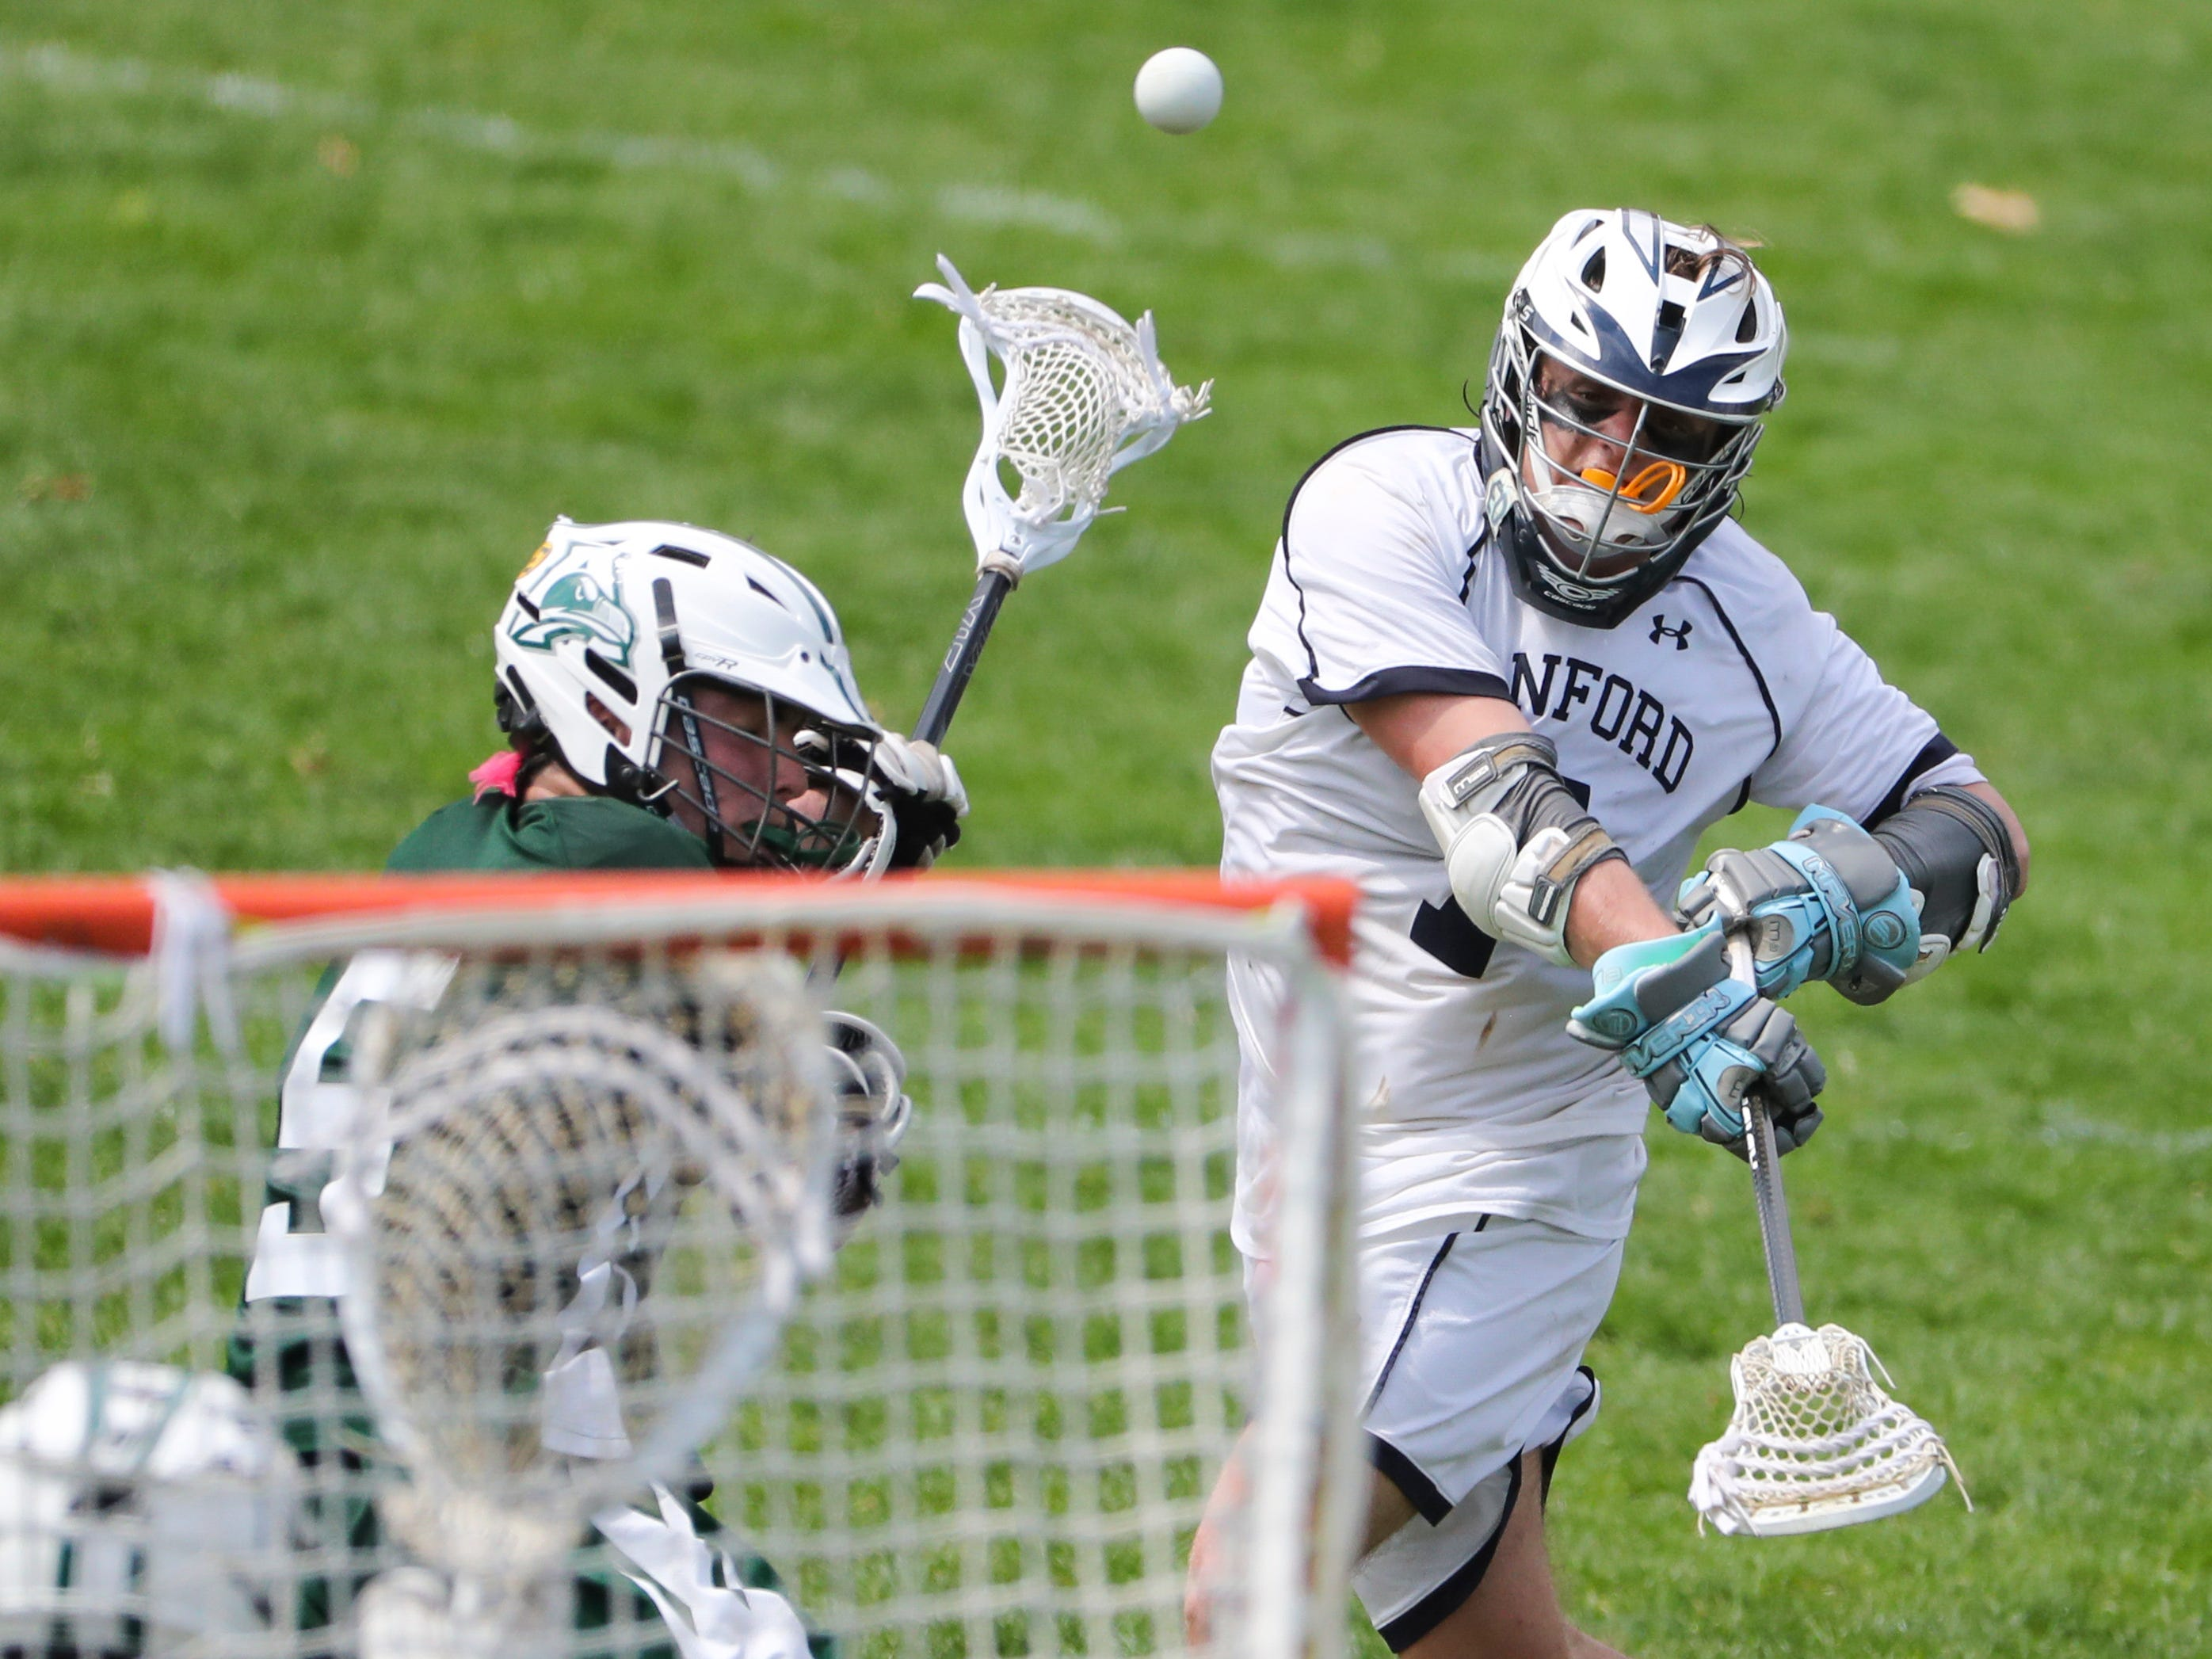 Sanford's Tommy Bloom shoots in the second half of Sanford's 12-10 win Saturday.